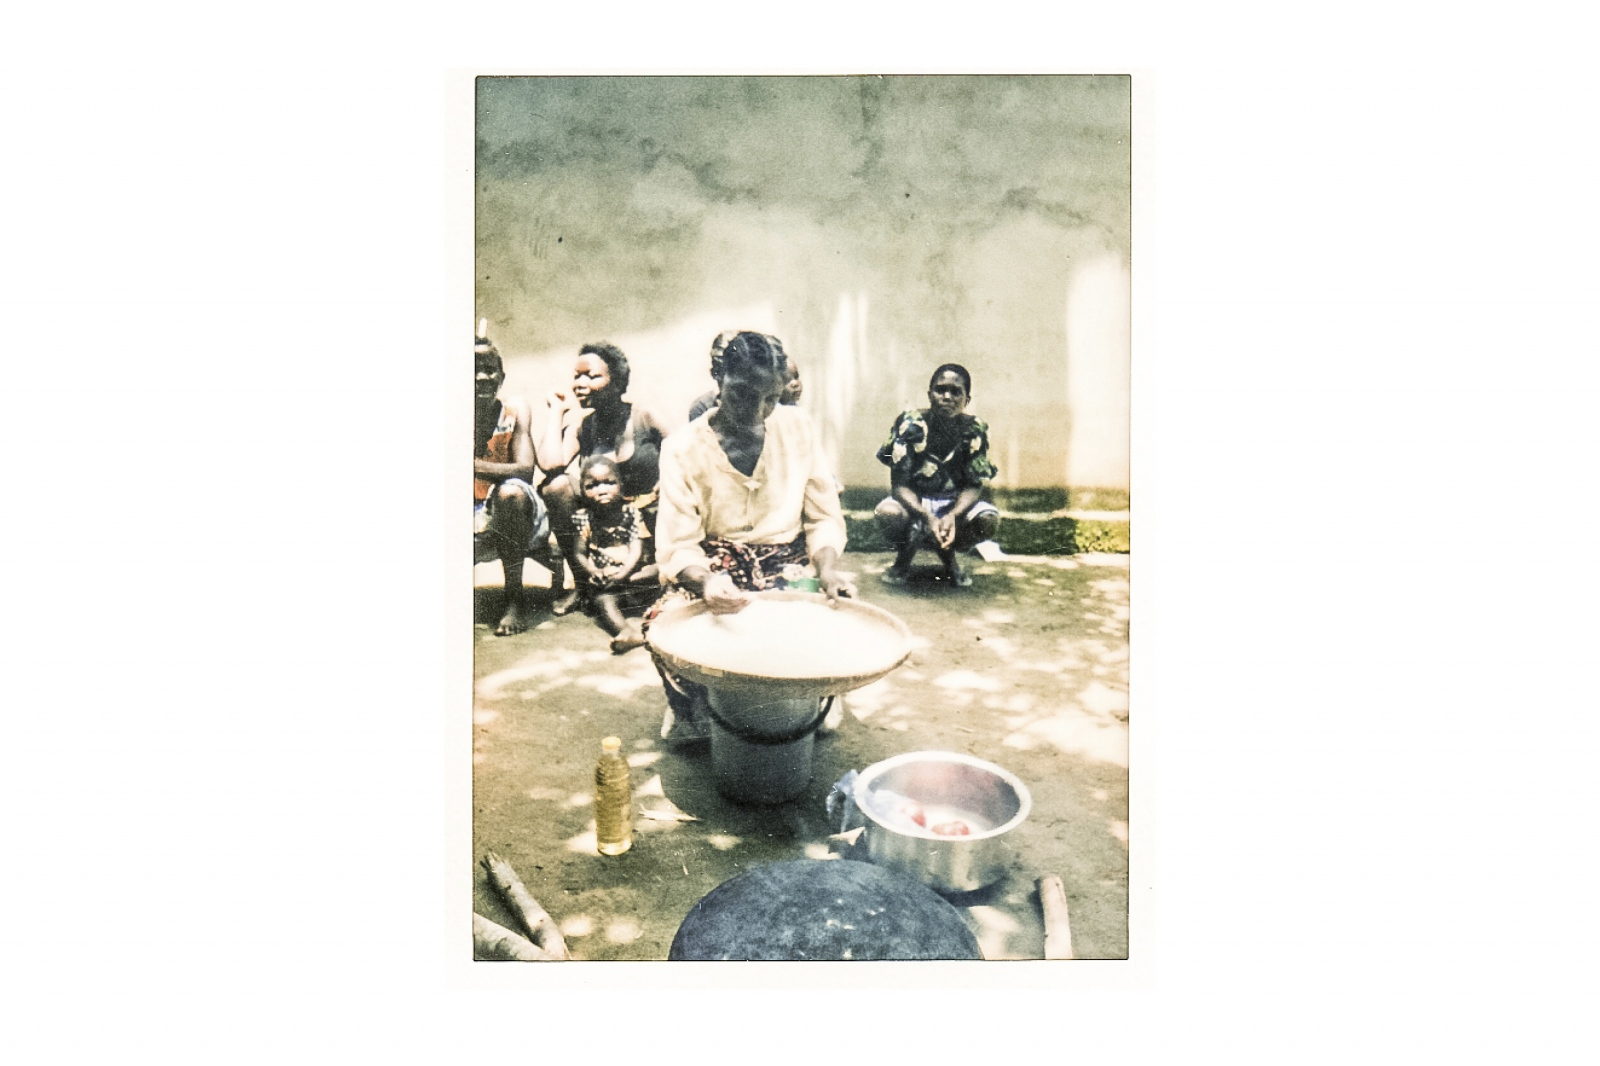 Art and Documentary Photography - Loading BERTRAMS_Polaroids_20.jpg